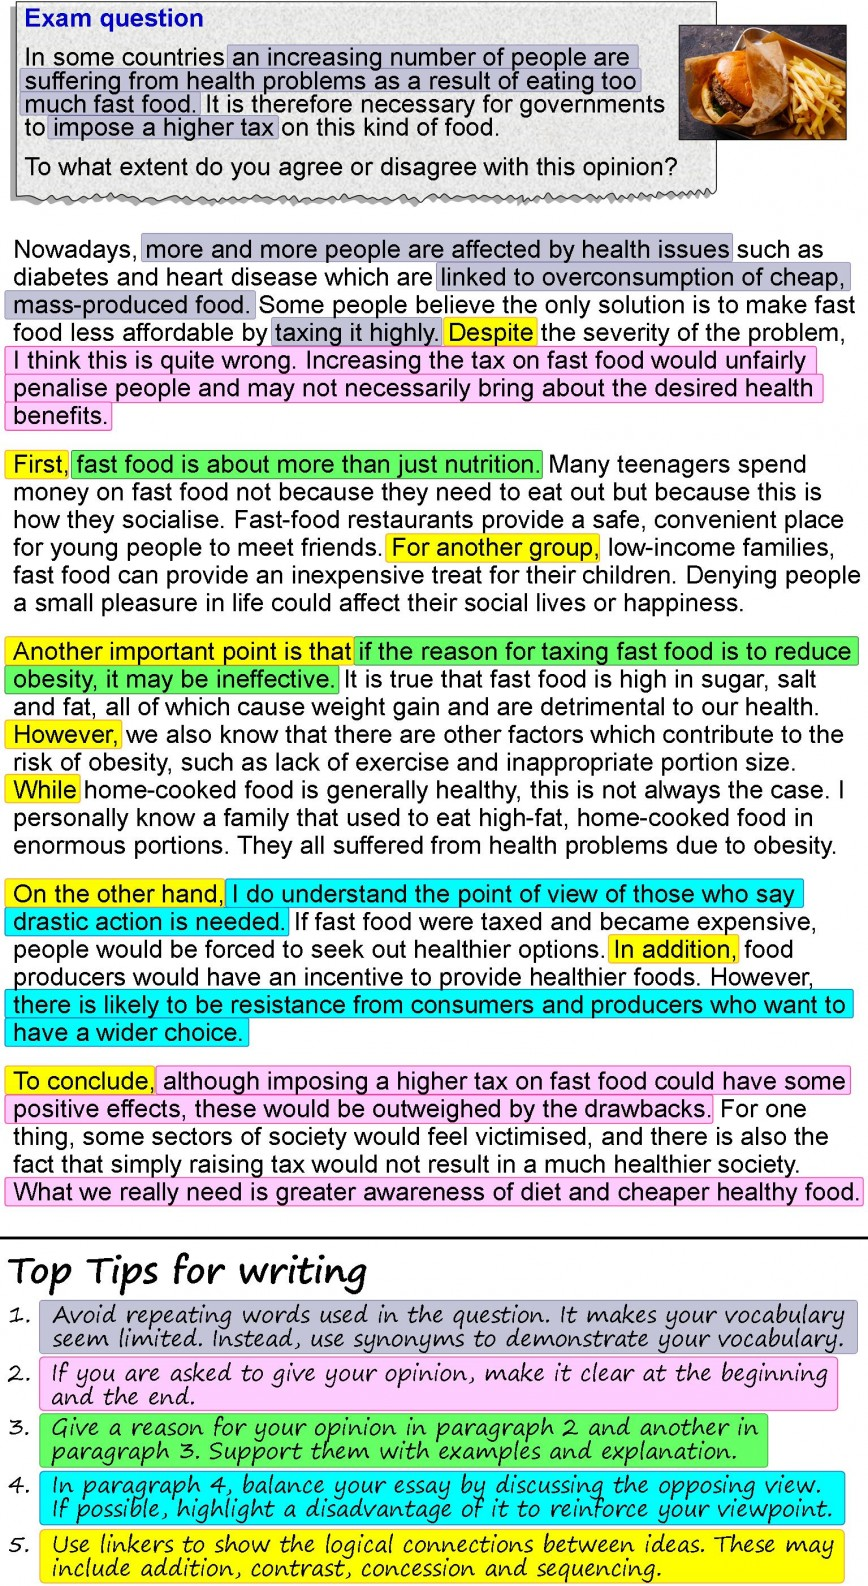 002 Essay Example Healthy Food An Opinion About Fast 4 Best In Hindi Wikipedia